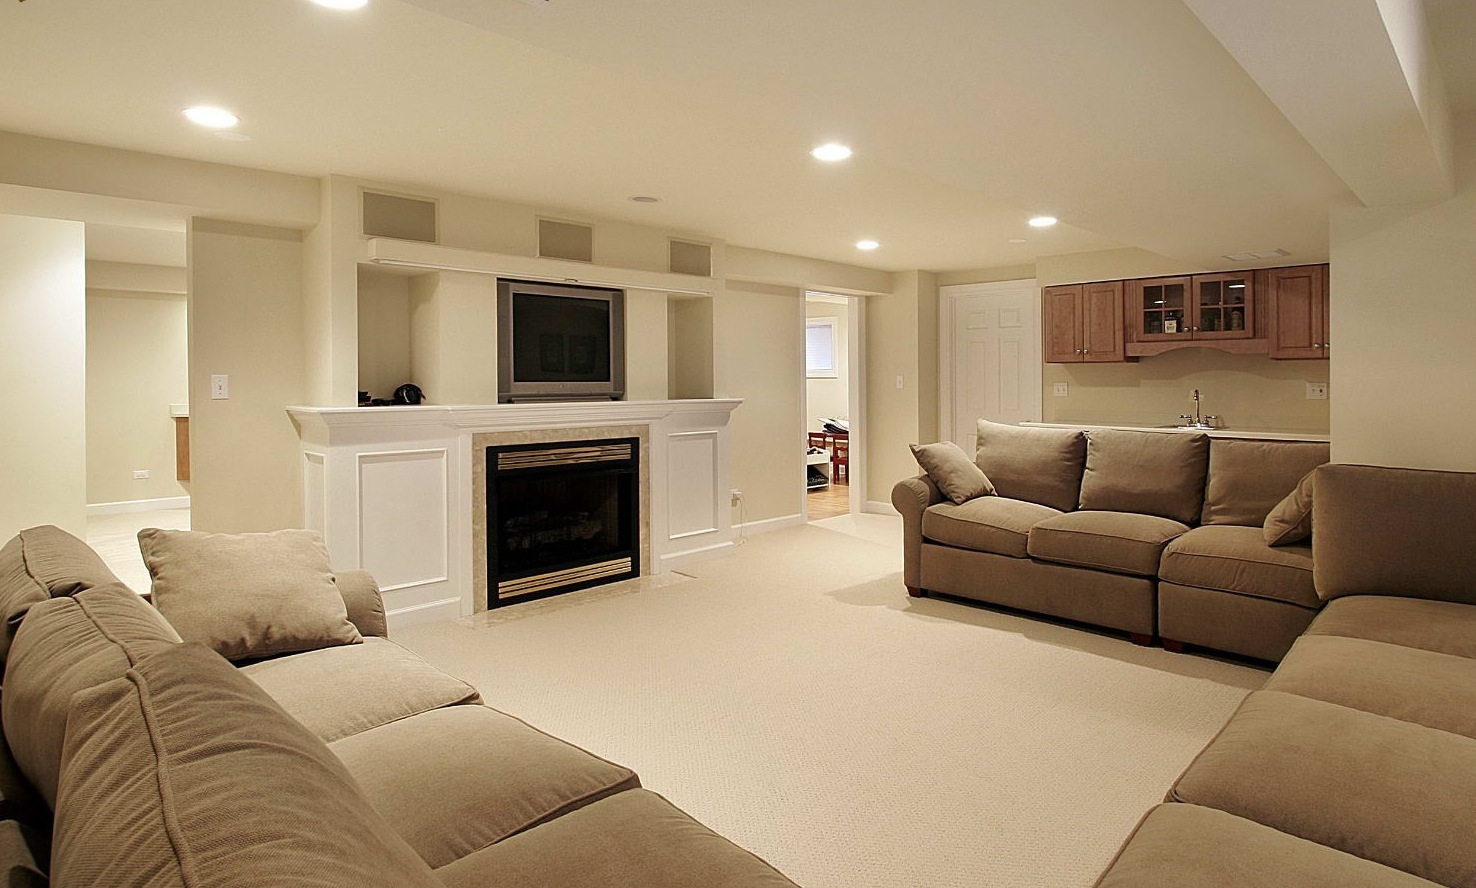 Remodeling Basement Ideas Best 30 Basement Remodeling Ideas & Inspiration Decorating Inspiration